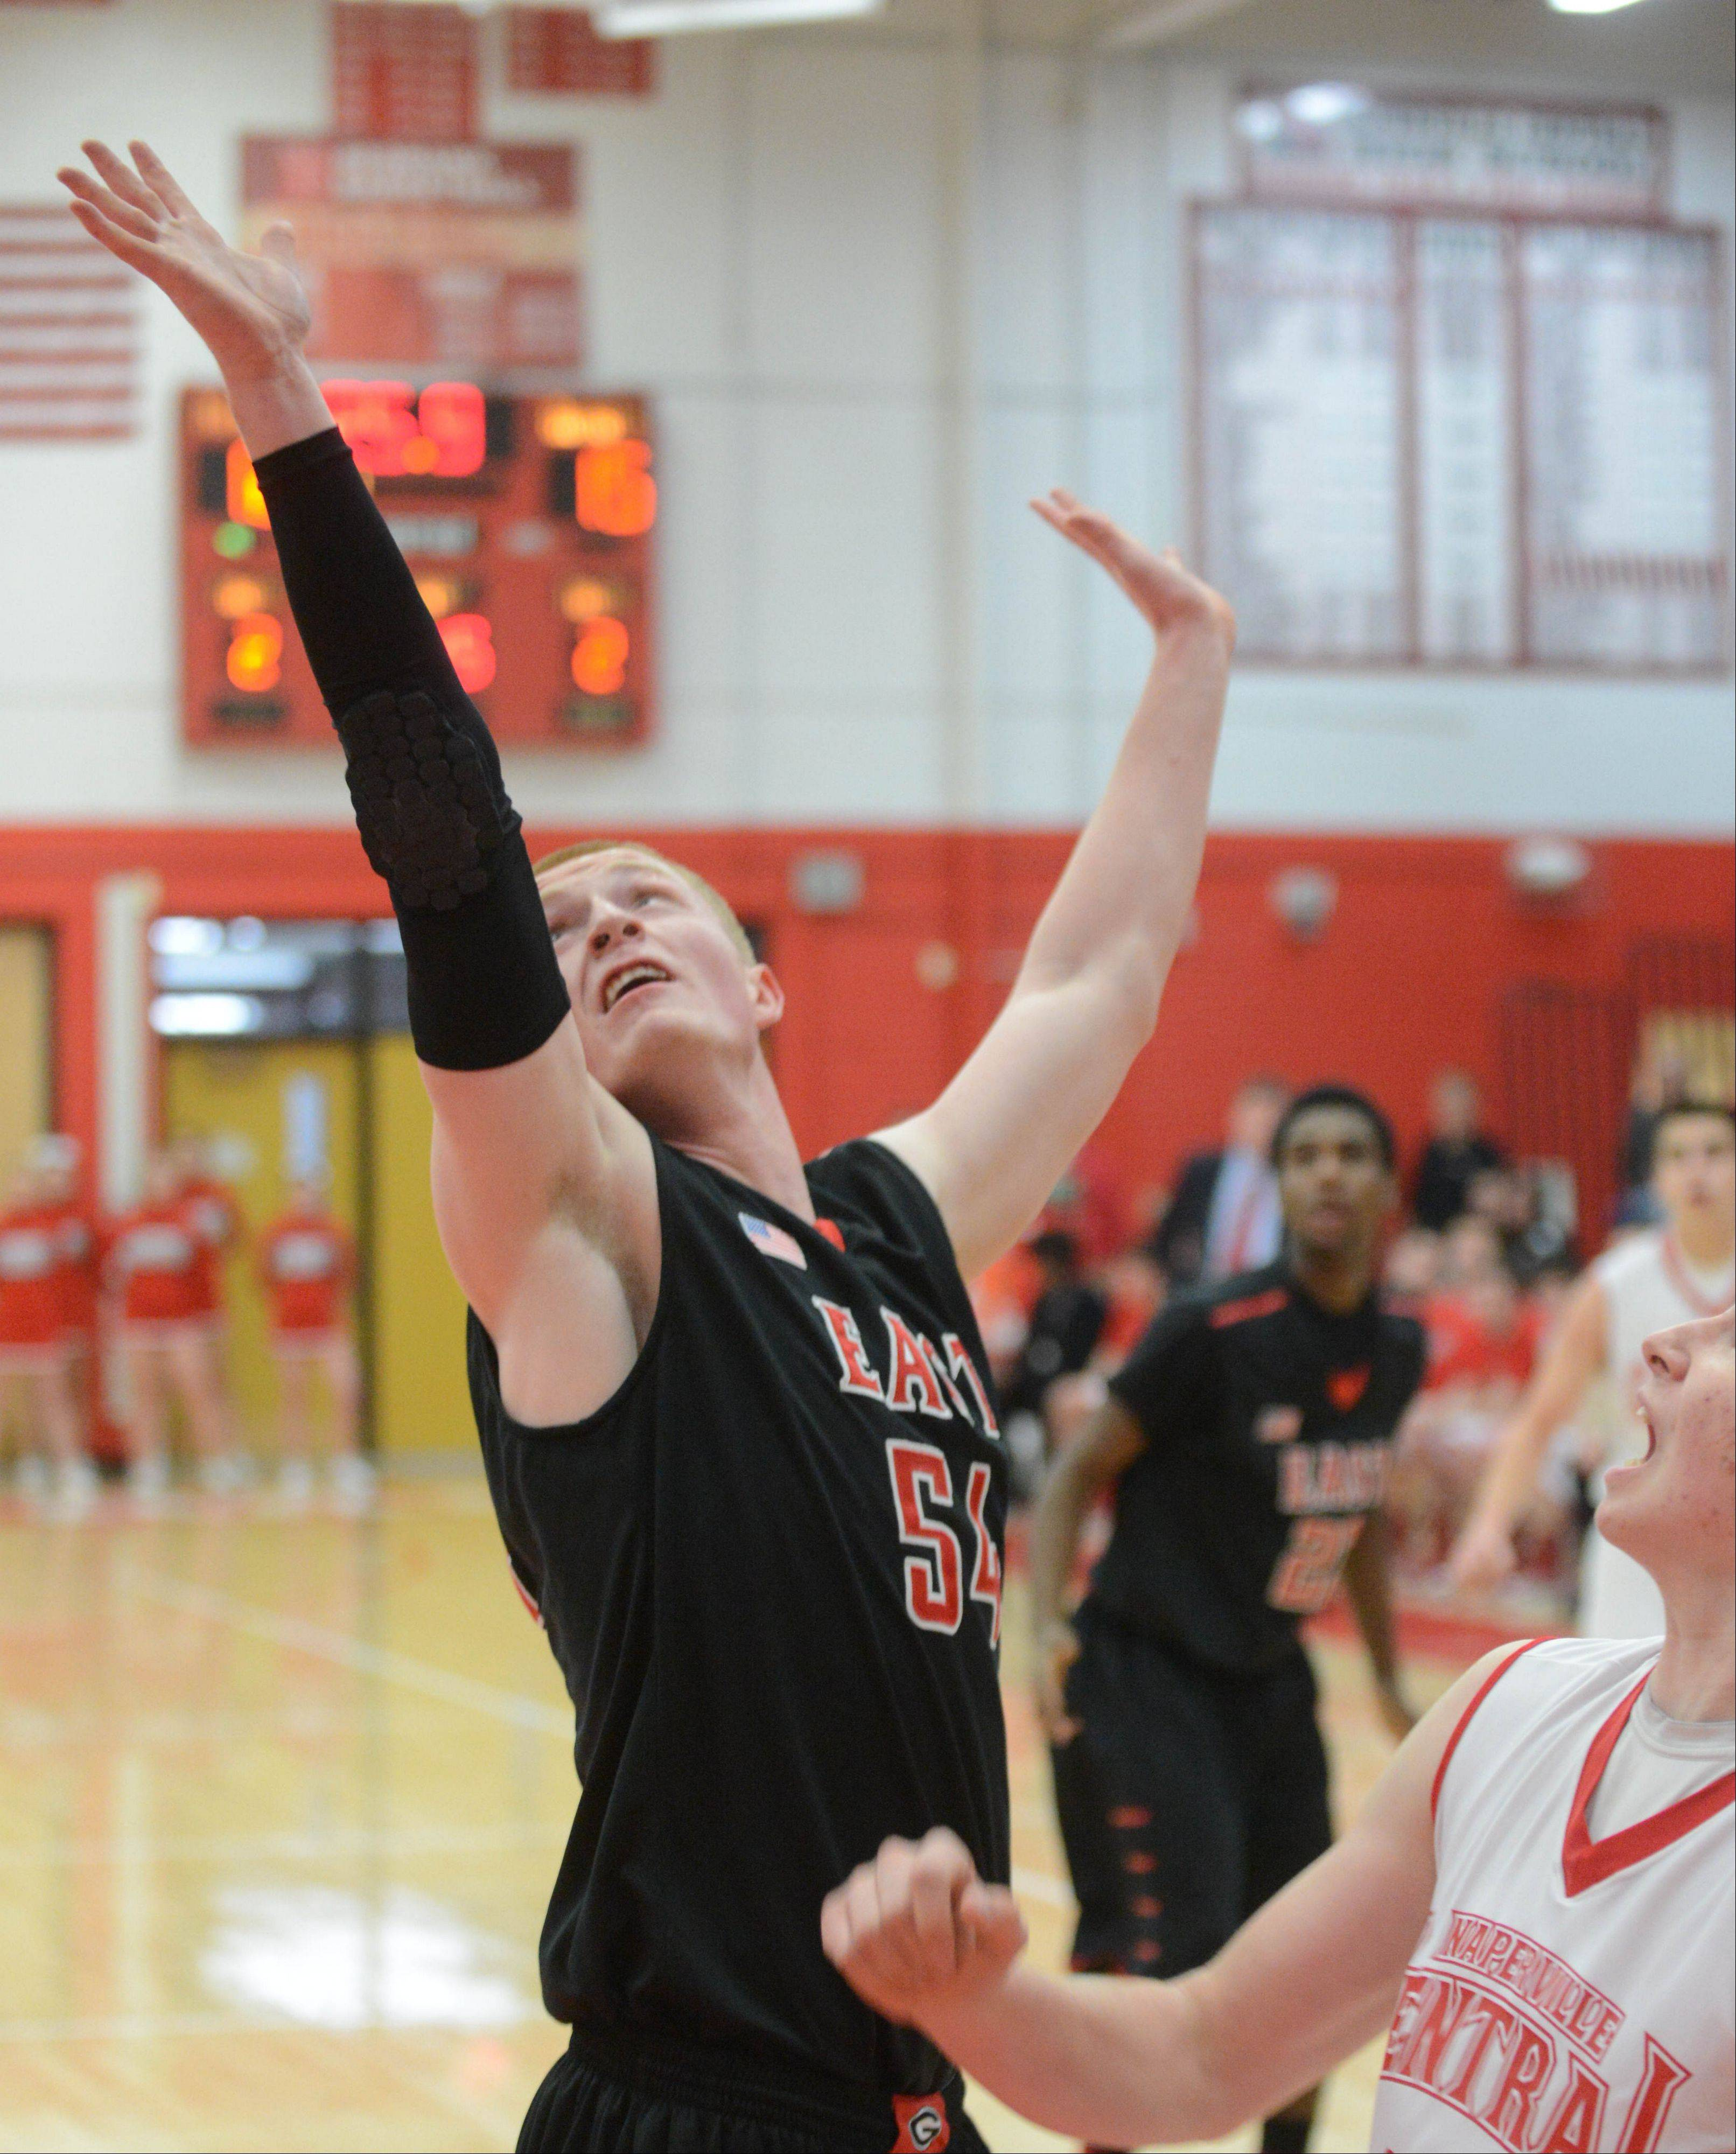 Naperville Central hosted Glenbard East Friday night for boys basketball.